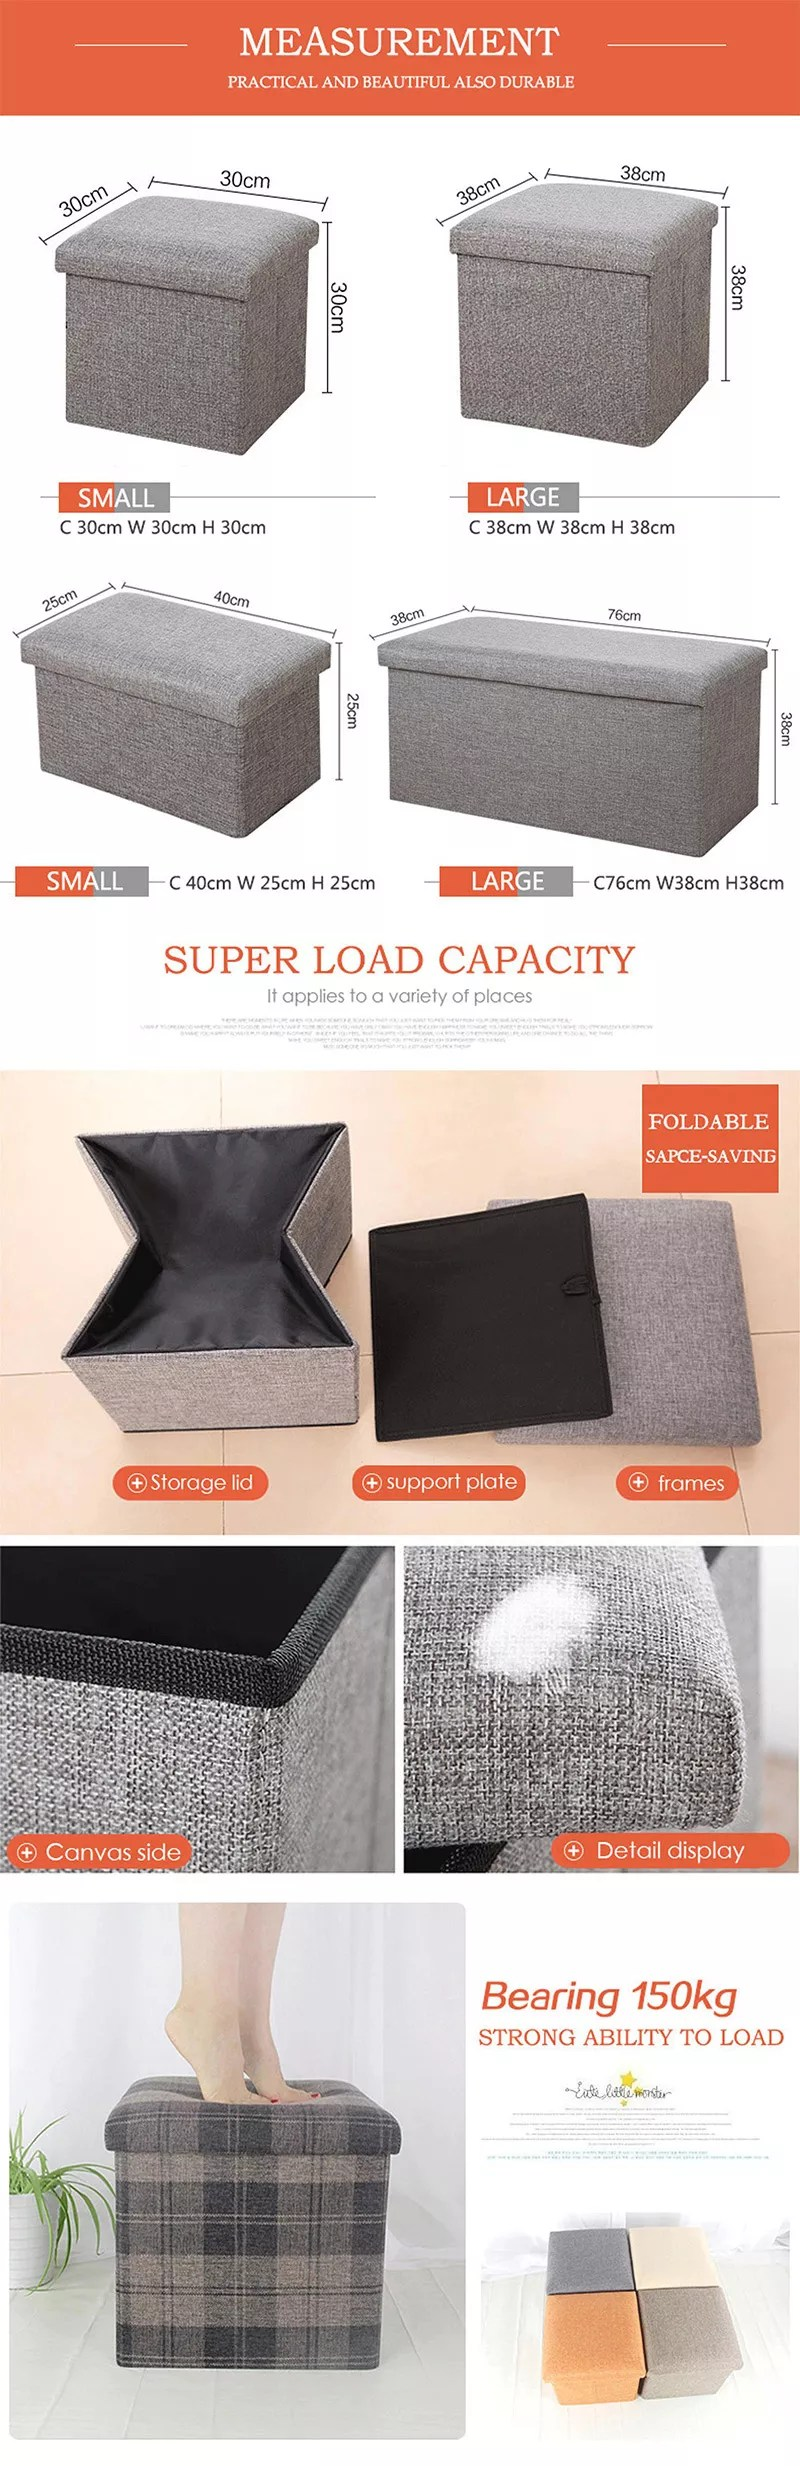 High Quality Living Room Cube Foldable Storage Stool Ottoman Buy Foldable Storage Stool Ottoman Cube Storage Stool Ottoman Living Room Storage Stool